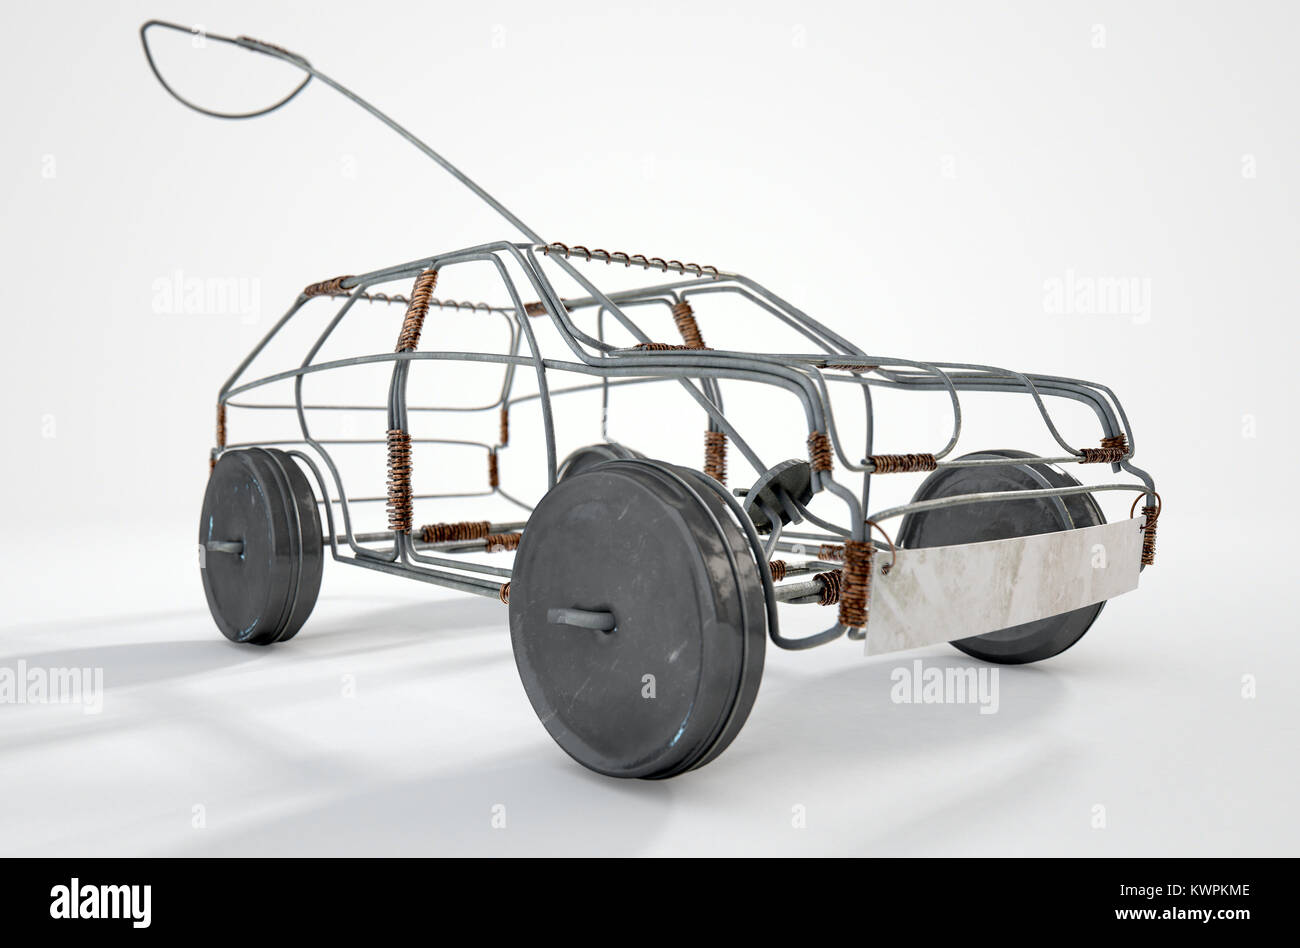 Wire Toy Africa Stock Photos & Wire Toy Africa Stock Images - Alamy